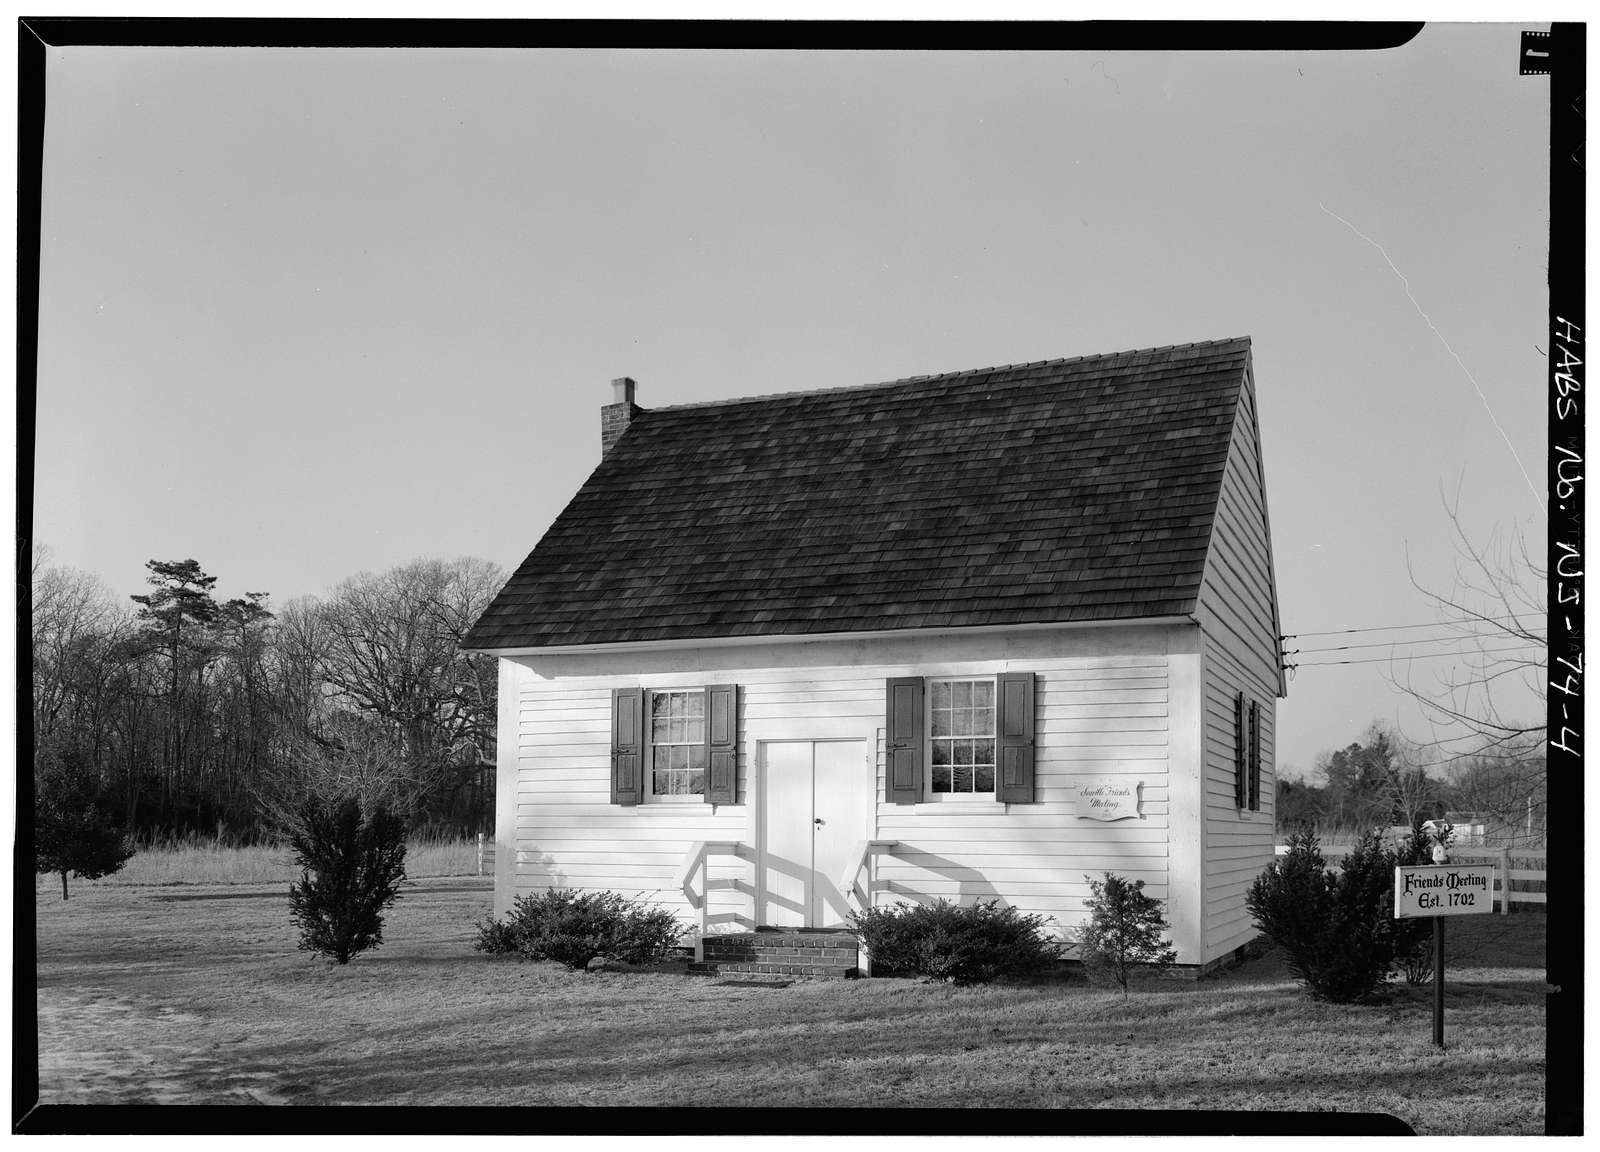 Friends' Meeting House, Shore Road, West side (State Route 9), Seaville, Cape May County, NJ